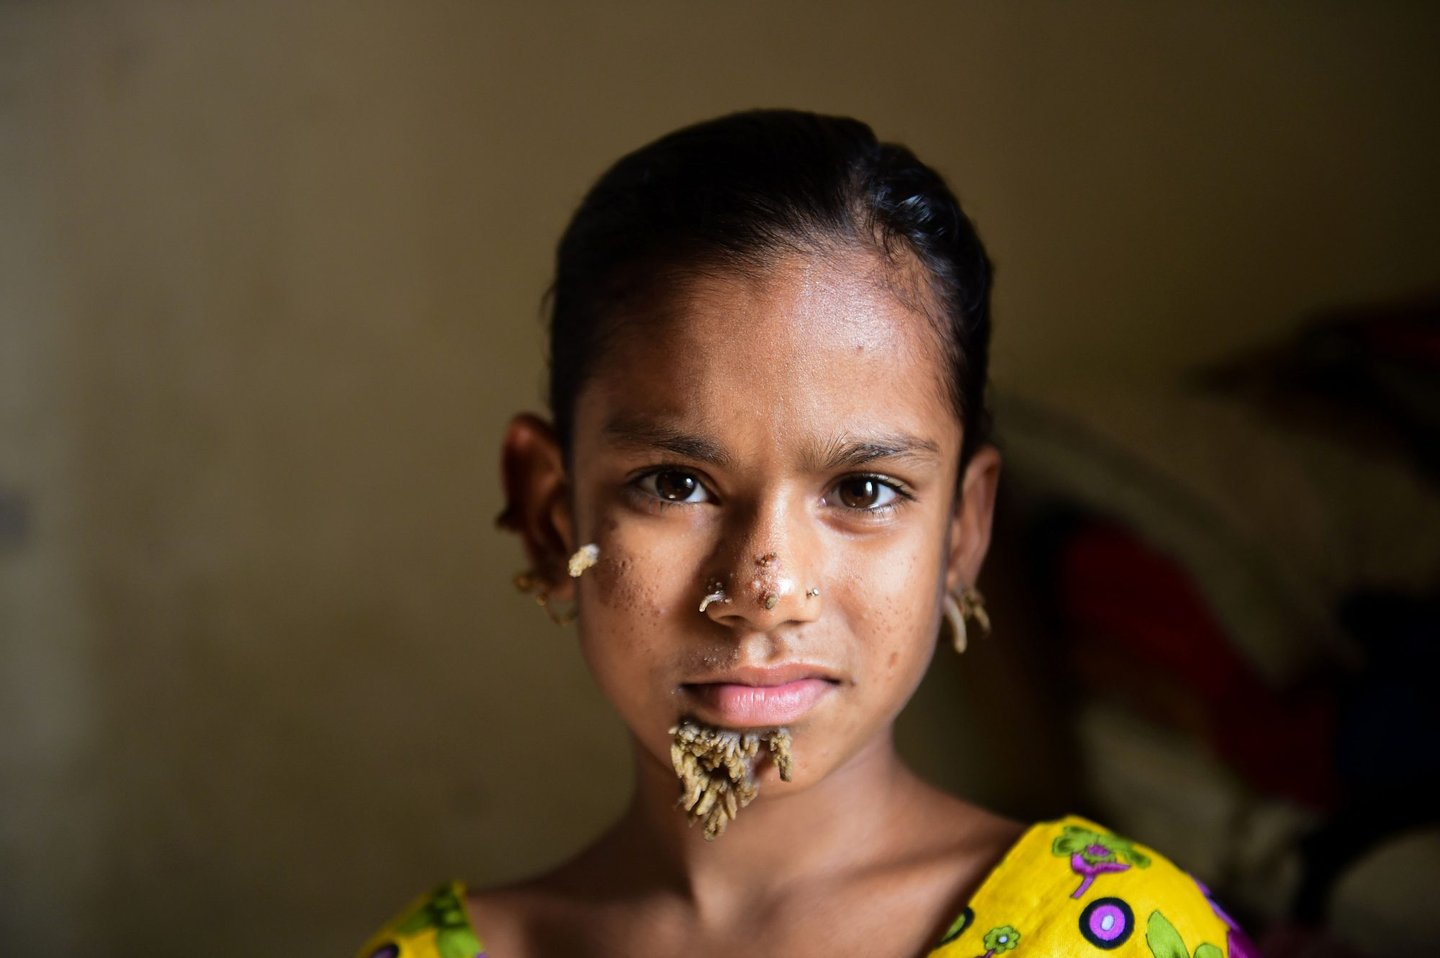 """TOPSHOT - In this photograph taken on January 30, 2017, Bangladeshi patient Sahana Khatun, 10, poses for a photograph at the Dhaka Medical College and Hospital. A young Bangladeshi girl with bark-like warts growing on her face could be the first female ever afflicted by so-called """"tree man syndrome"""", doctors studying the rare condition said January 31. Ten-year-old Sahana Khatun has the tell-tale gnarled growths sprouting from her chin, ear and nose, but doctors at Dhaka's Medical College Hospital are still conducting tests to establish if she has the unusual skin disorder. / AFP / STR (Photo credit should read STR/AFP/Getty Images)"""